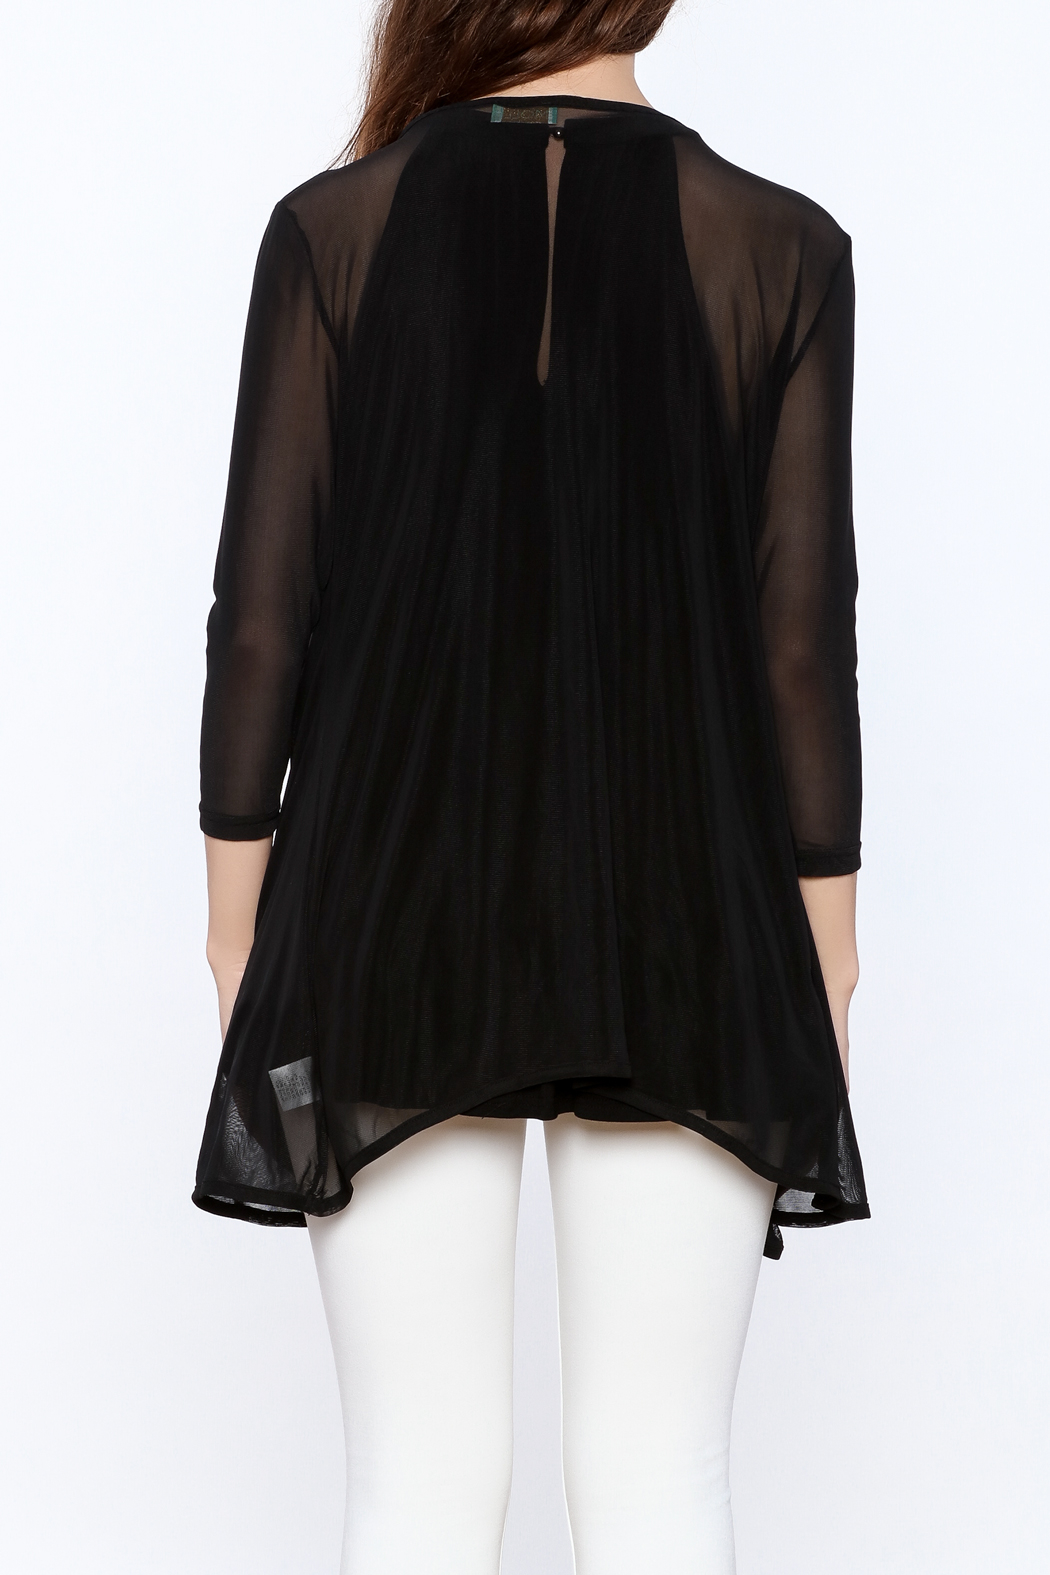 molli Black Mesh Cardigan - Back Cropped Image